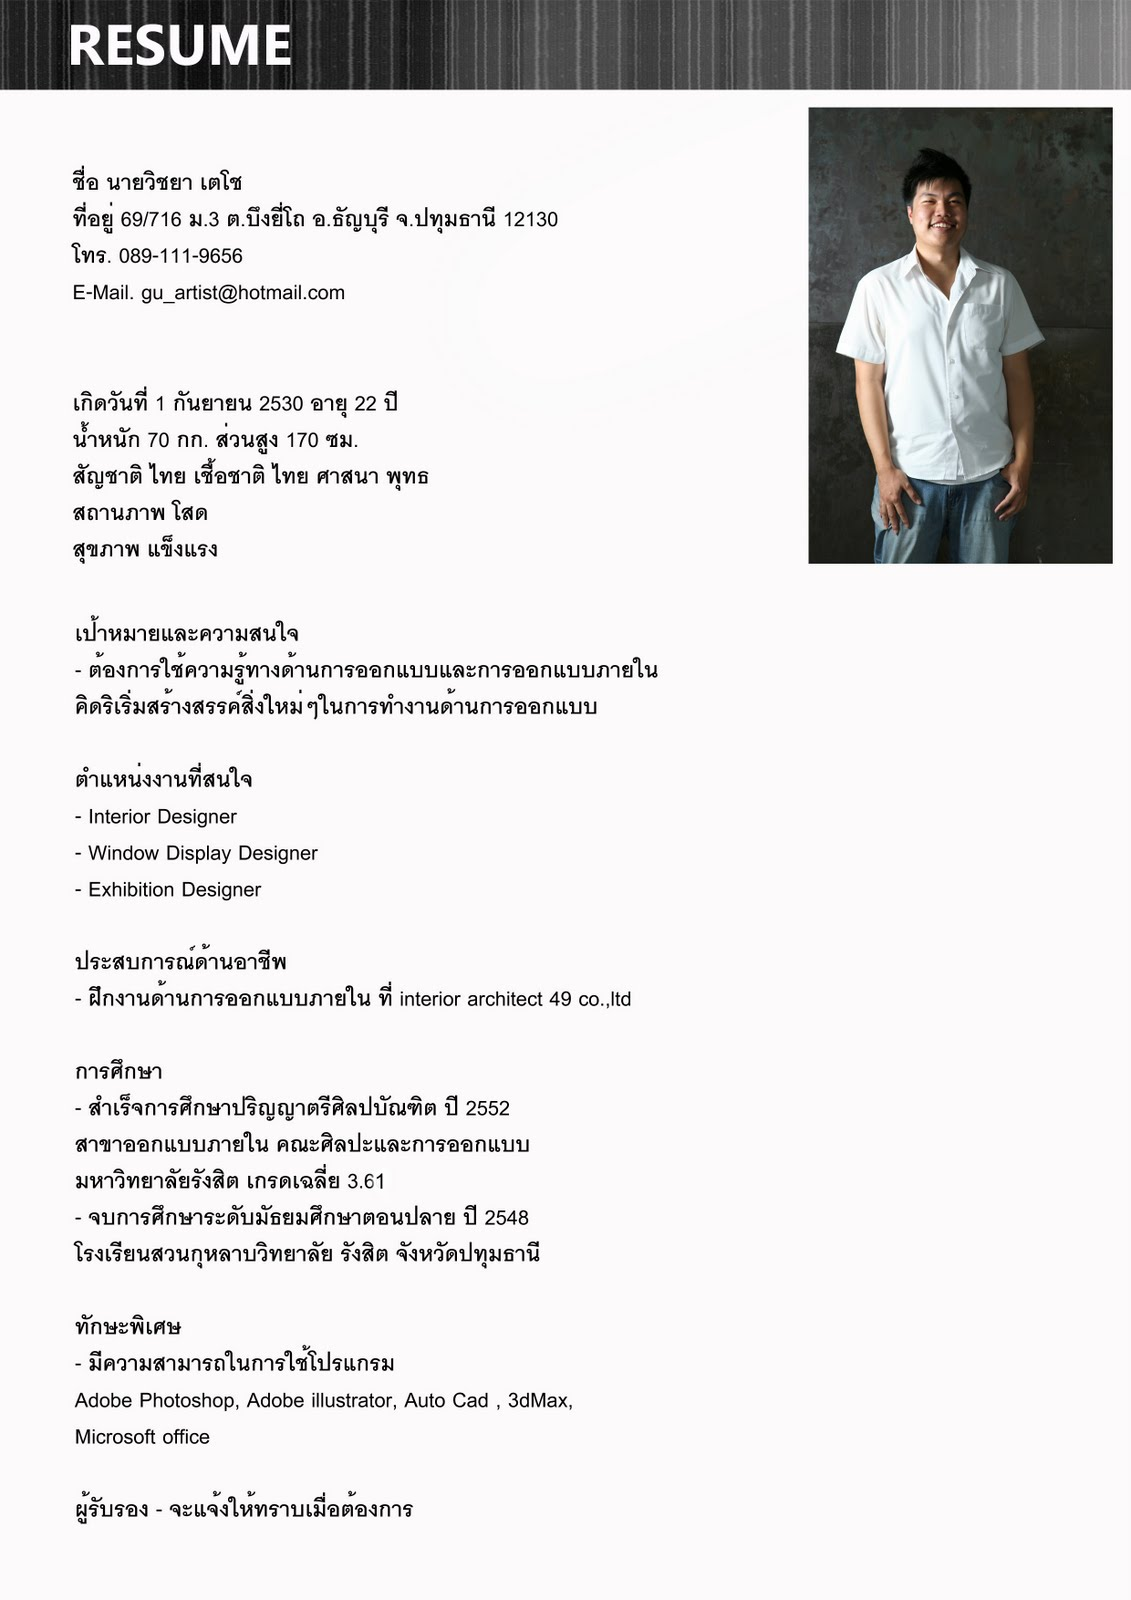 resume samples philippine format sample customer service resume resume samples philippine format resume templates you can jobstreet acting resume template word acting